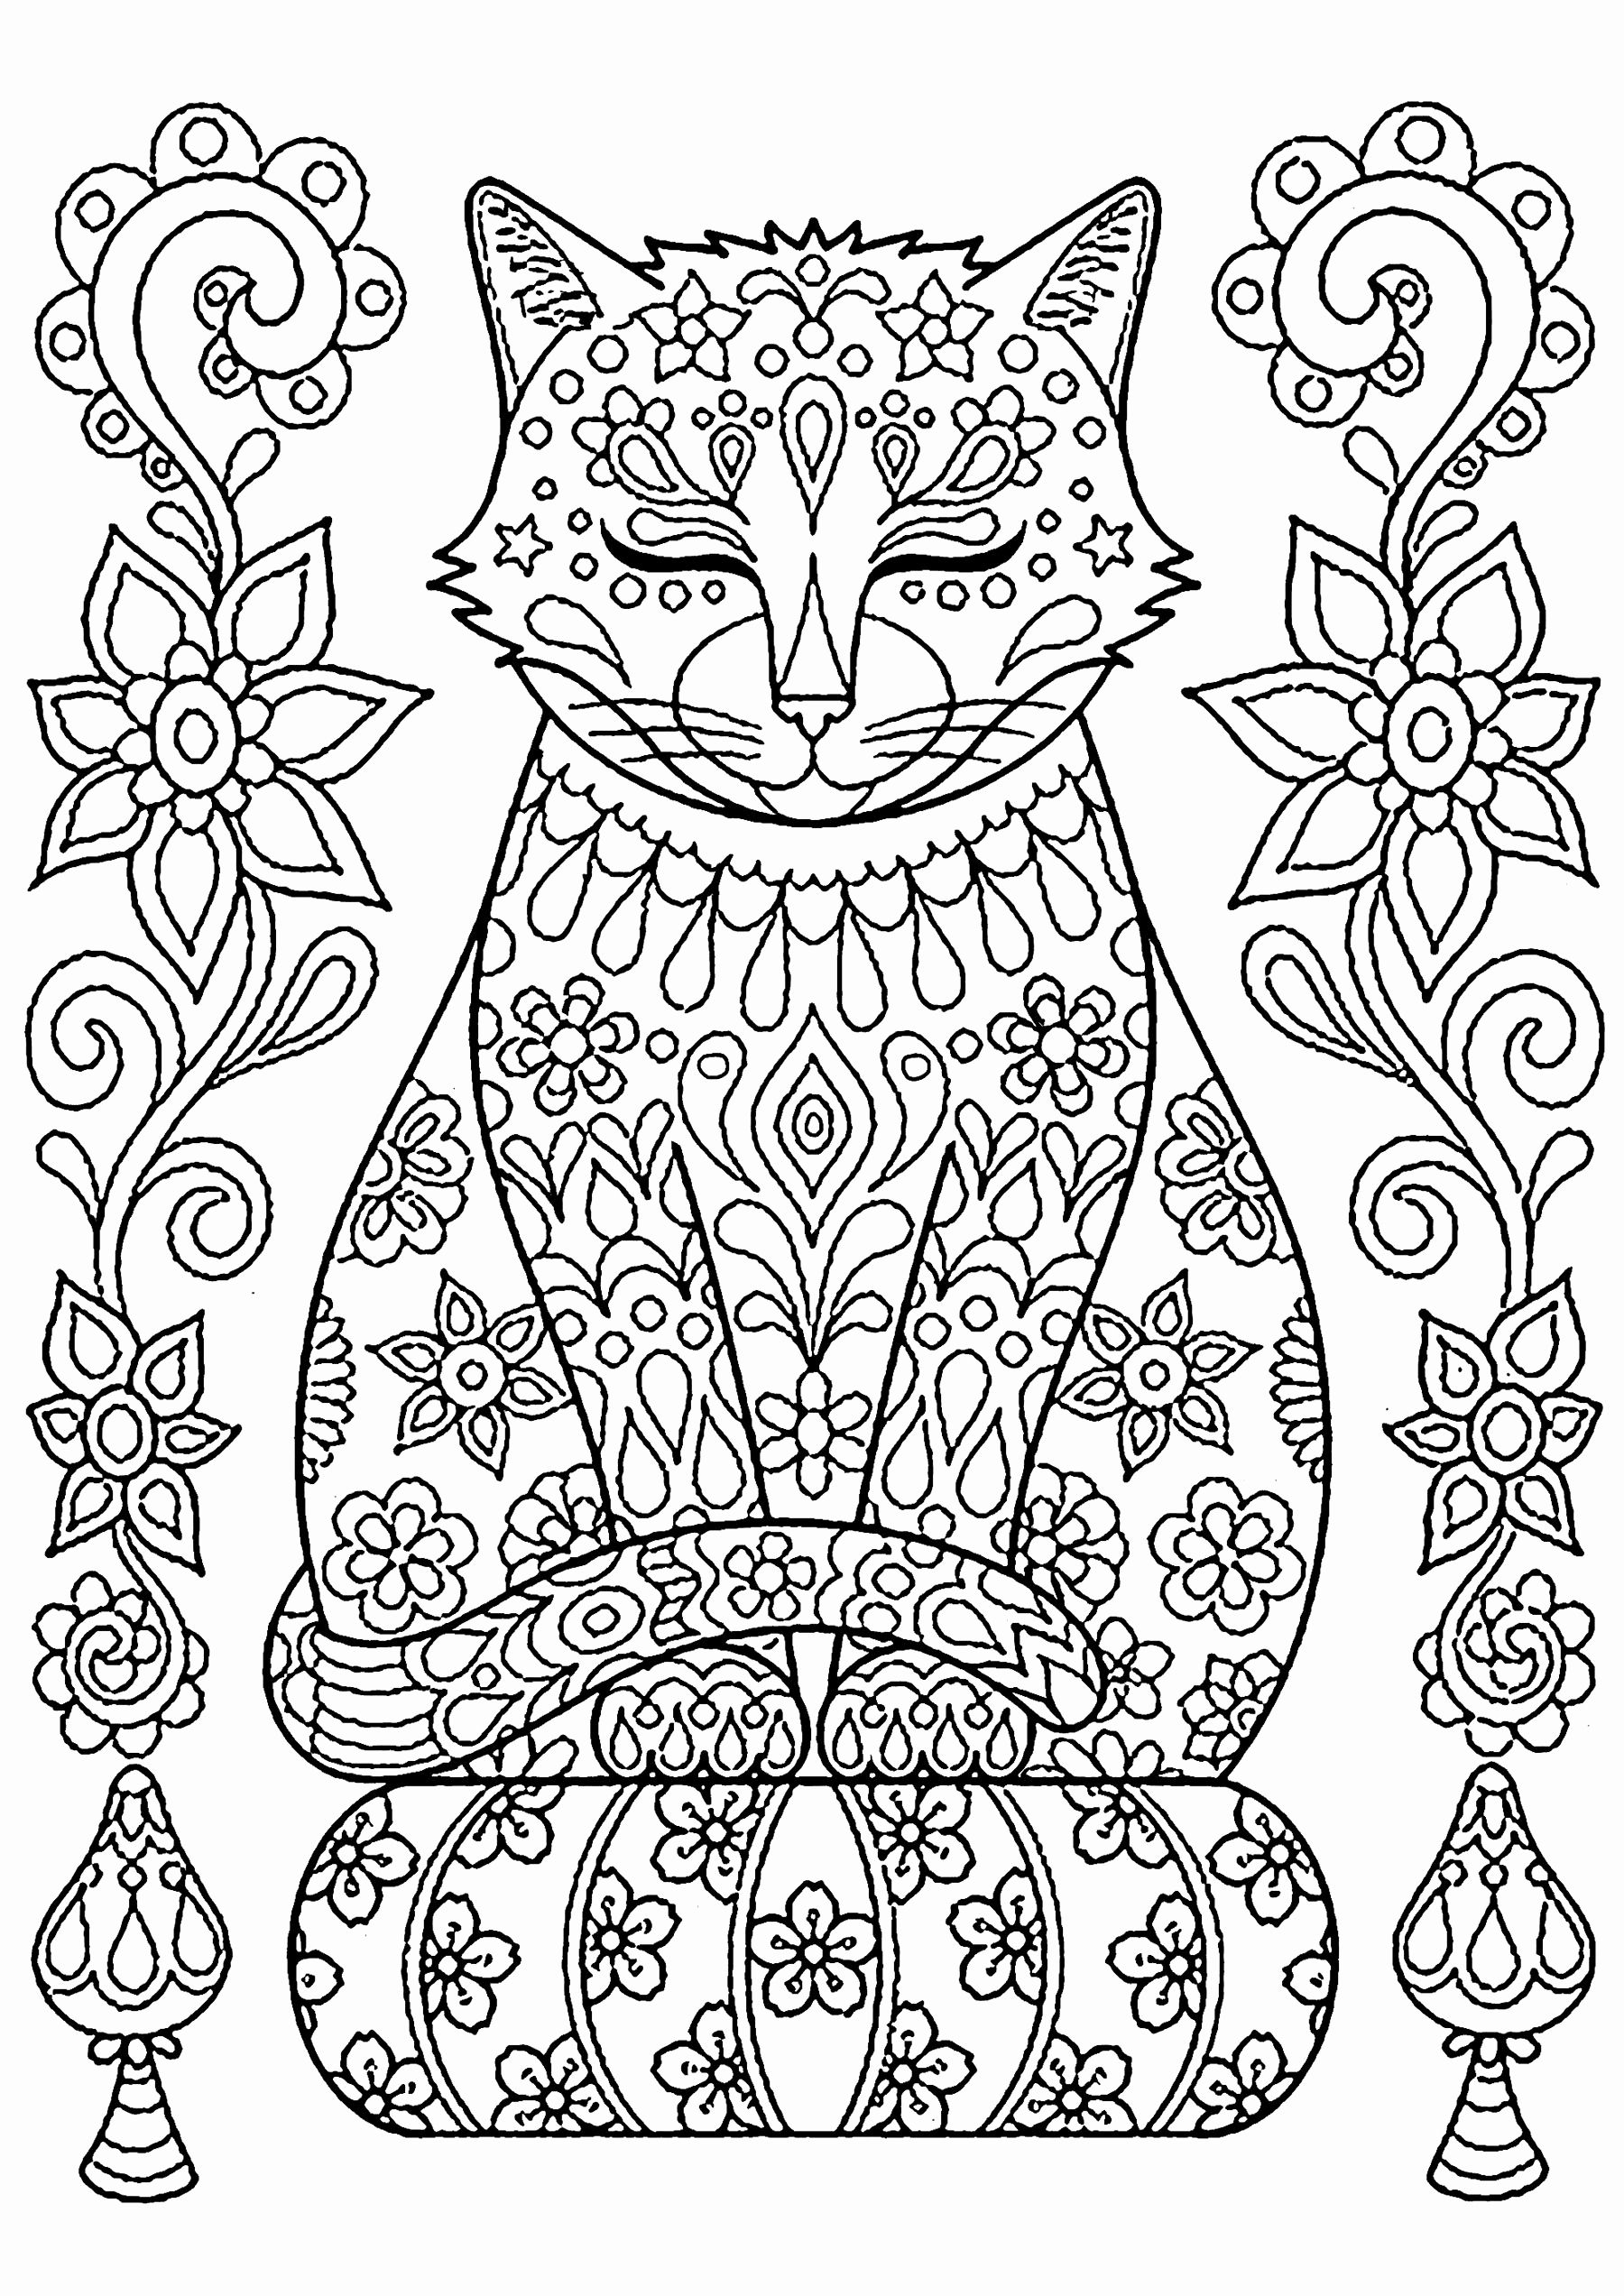 Realistic Wild Cat Coloring Pages For Kids And Adults In 2020 Cat Coloring Book Mandala Coloring Pages Animal Coloring Pages